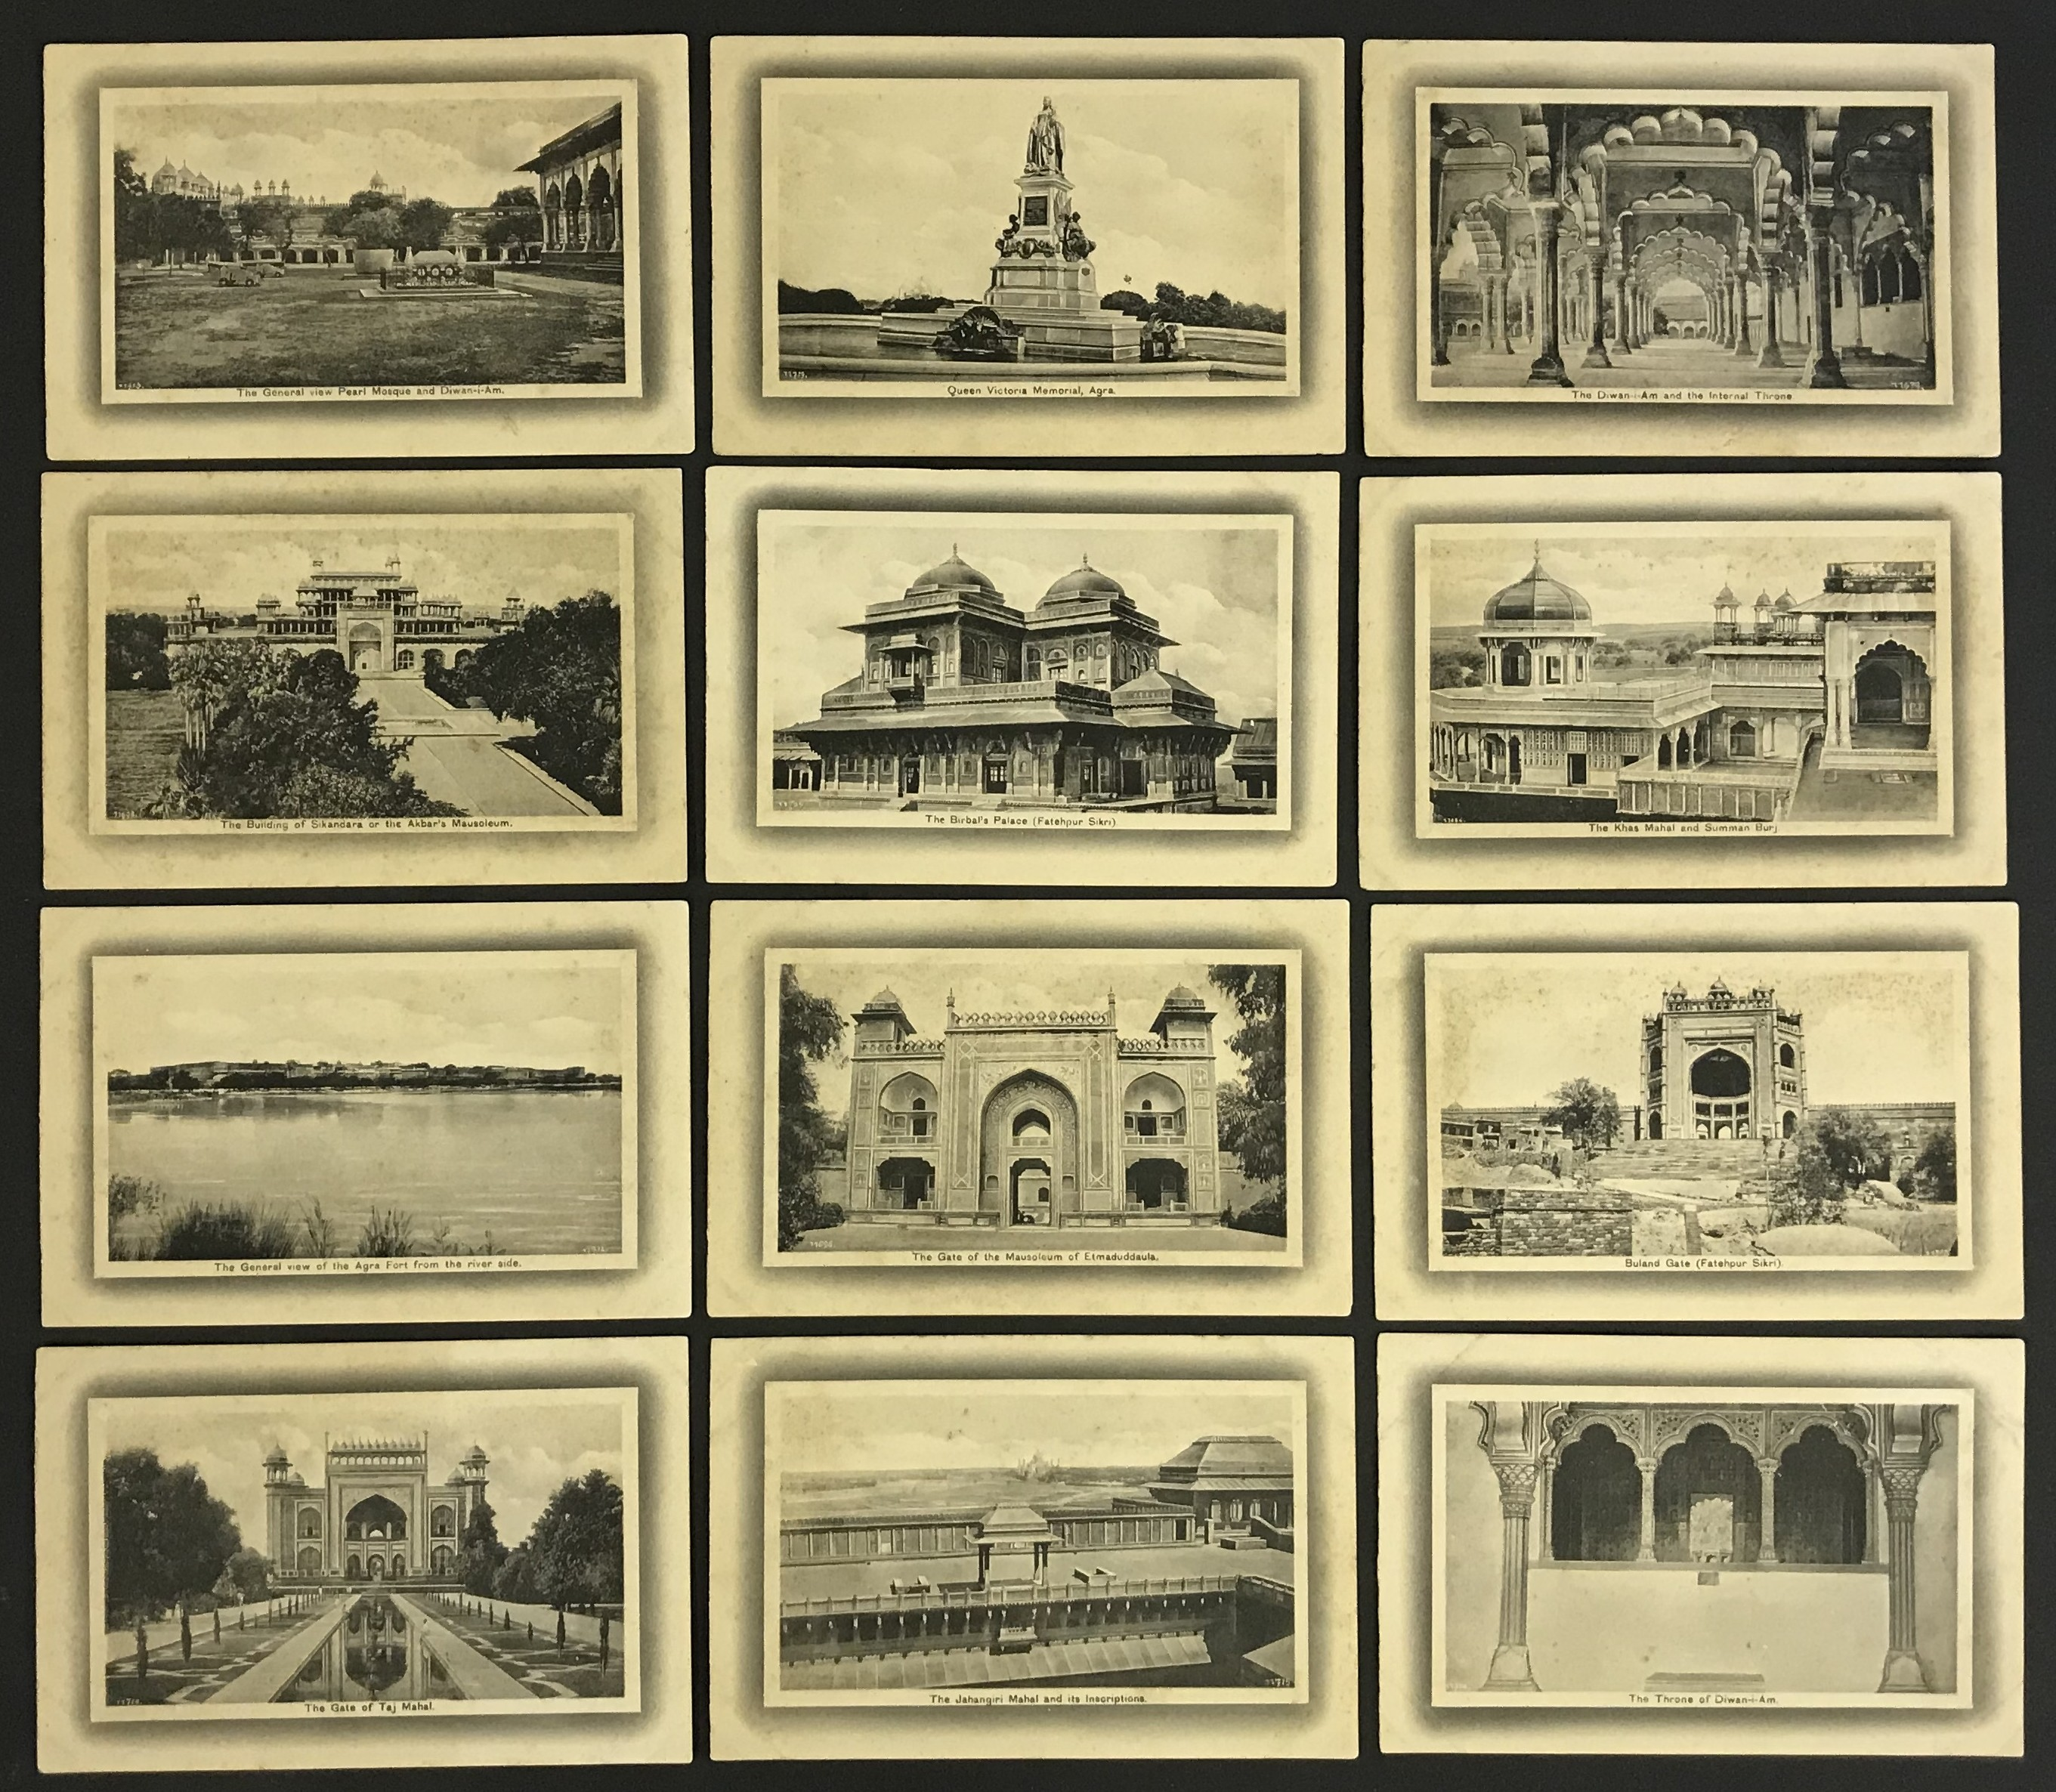 H.A. MIRZA & SONS DELHI - POSTCARDS OF INDIA (20) PRINTED IN SAXONY - Image 3 of 4